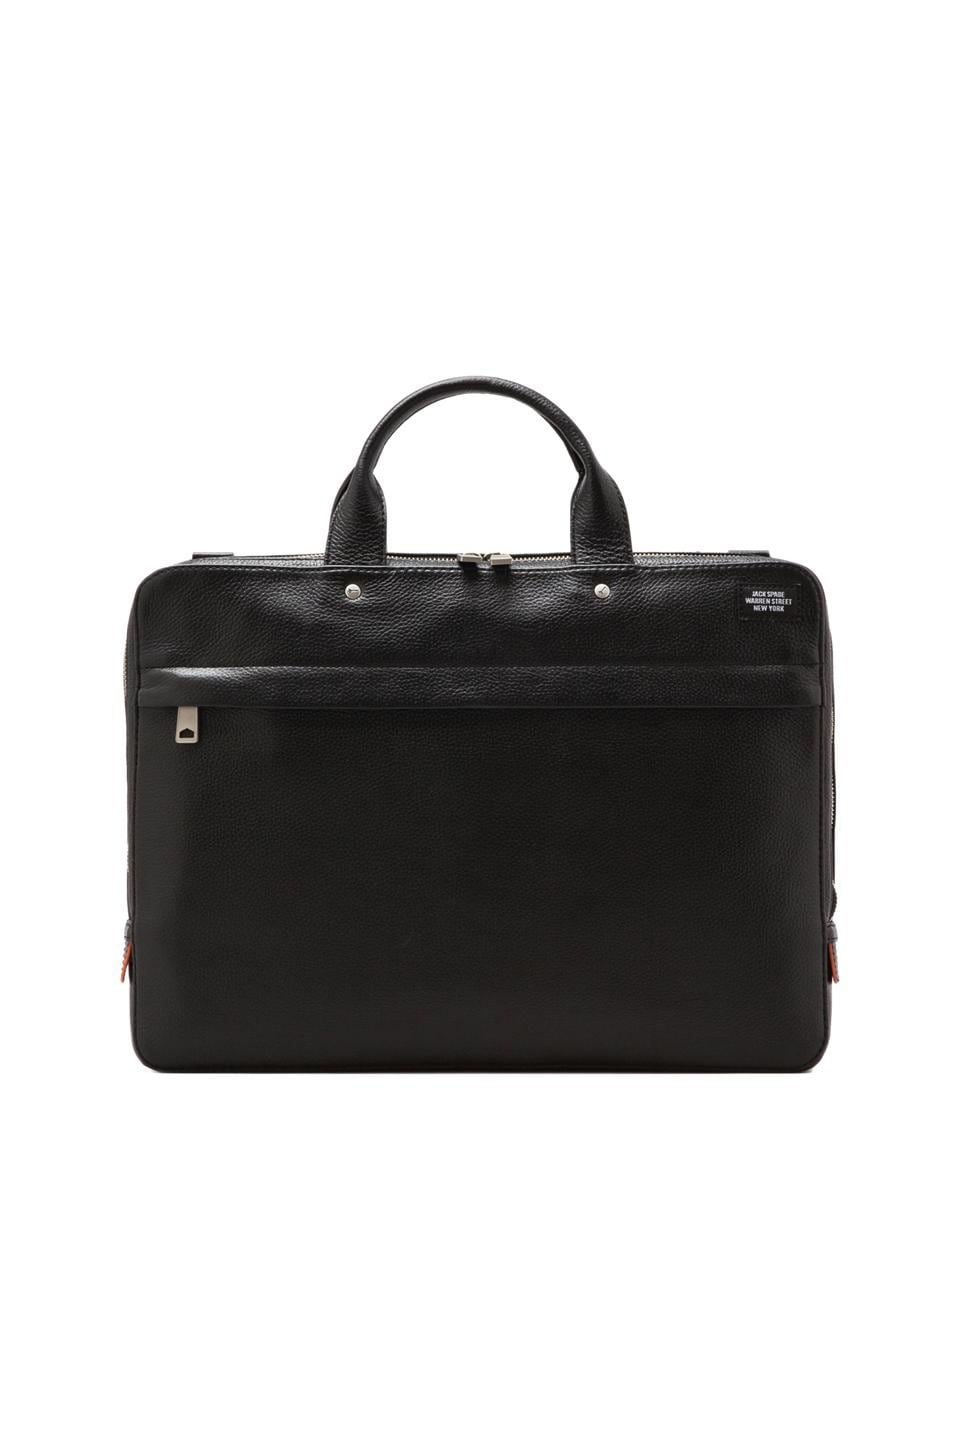 Jack Spade Mason Leather Slim Brief in Black/Black